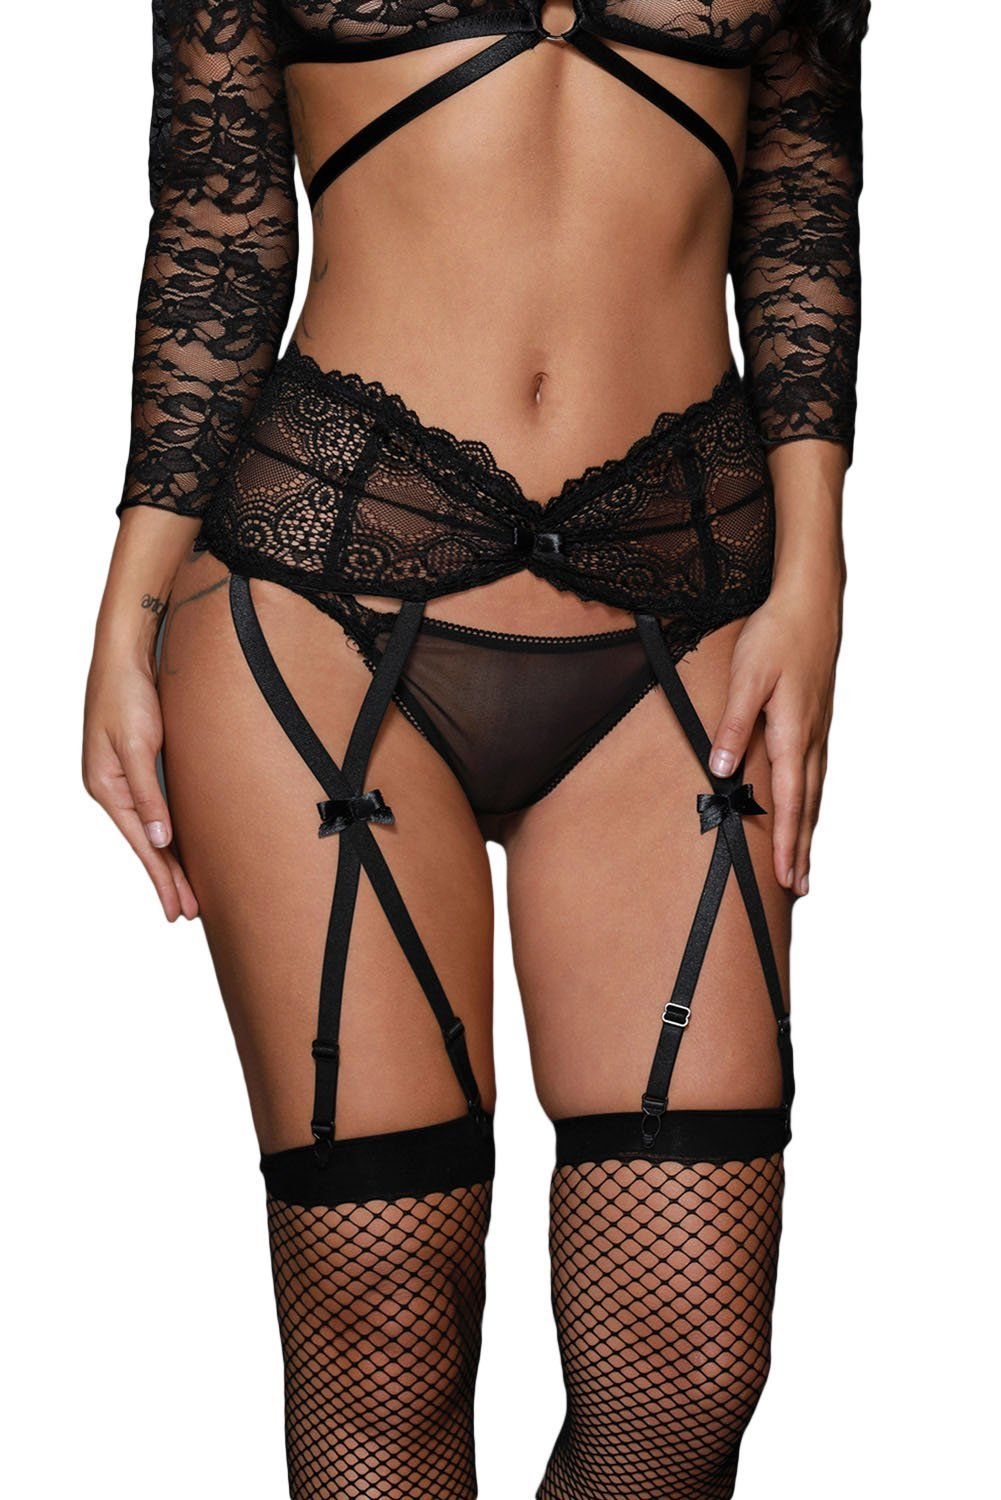 Crave Suspender Belt - Black